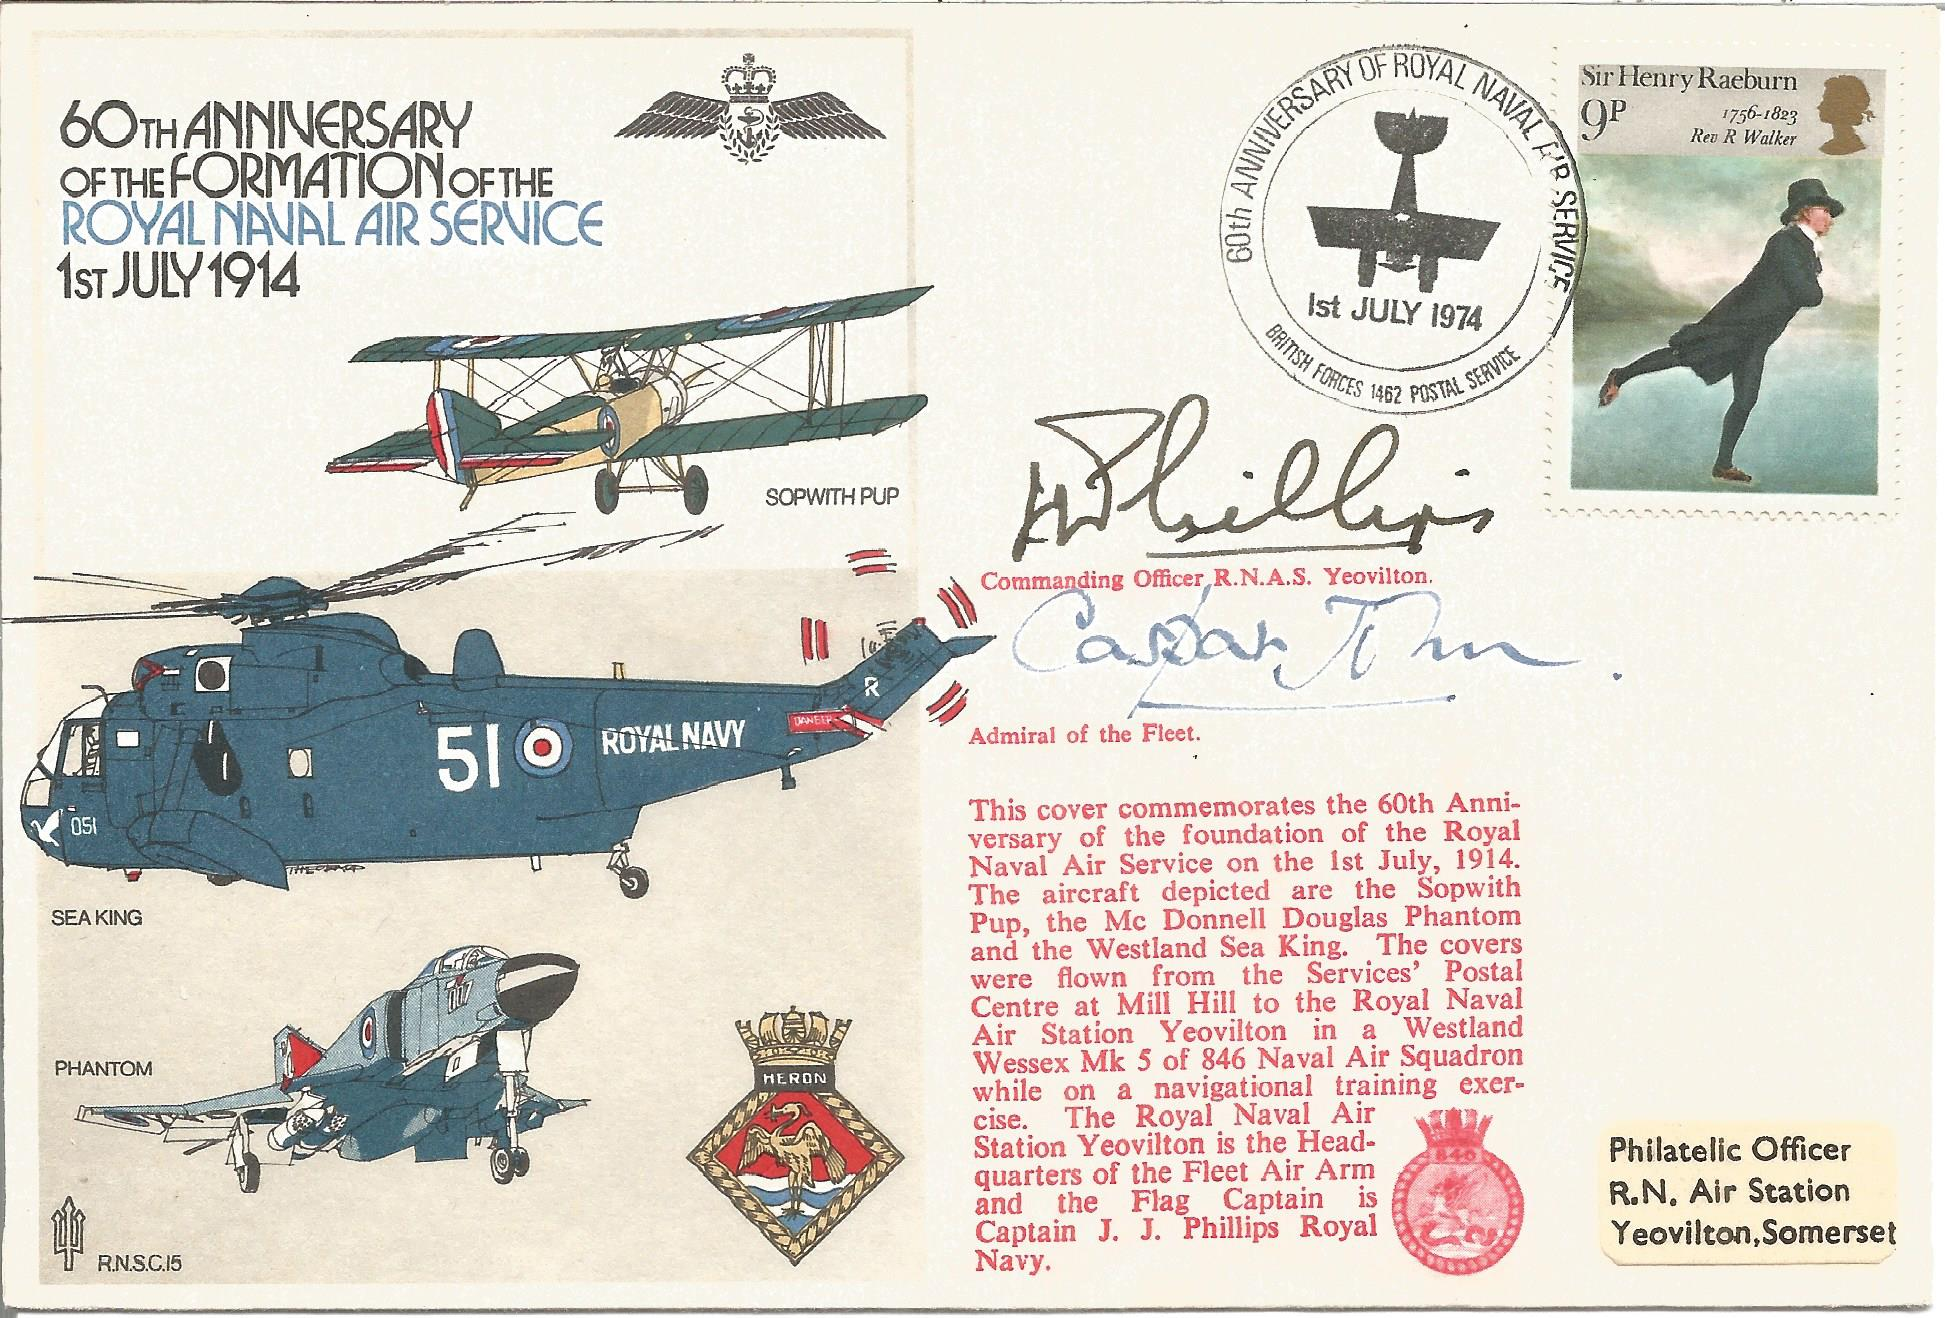 Cpt J. J. Phillips and Casper John signed 60th Anniversary of the Formation of the Royal Naval Air